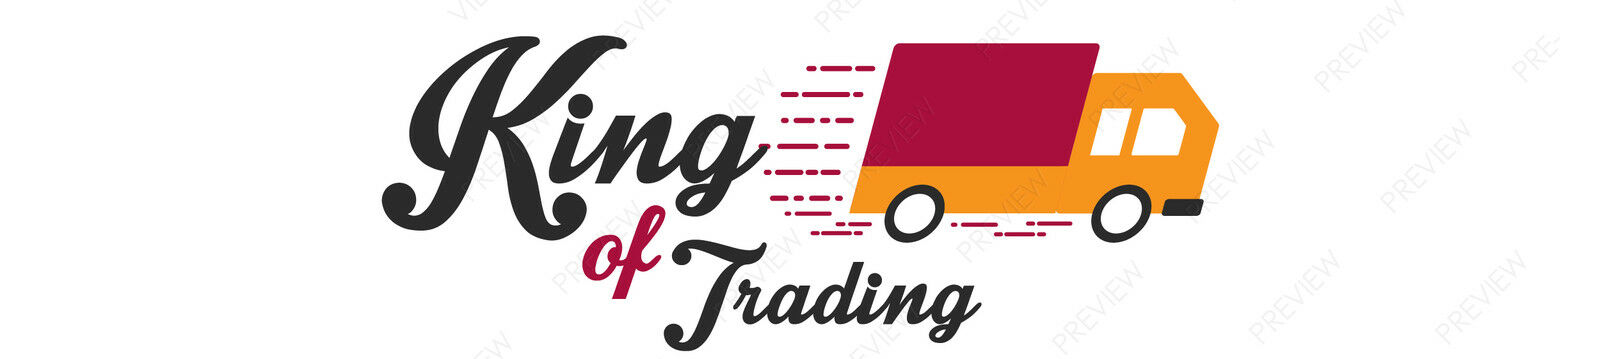 King of Trading